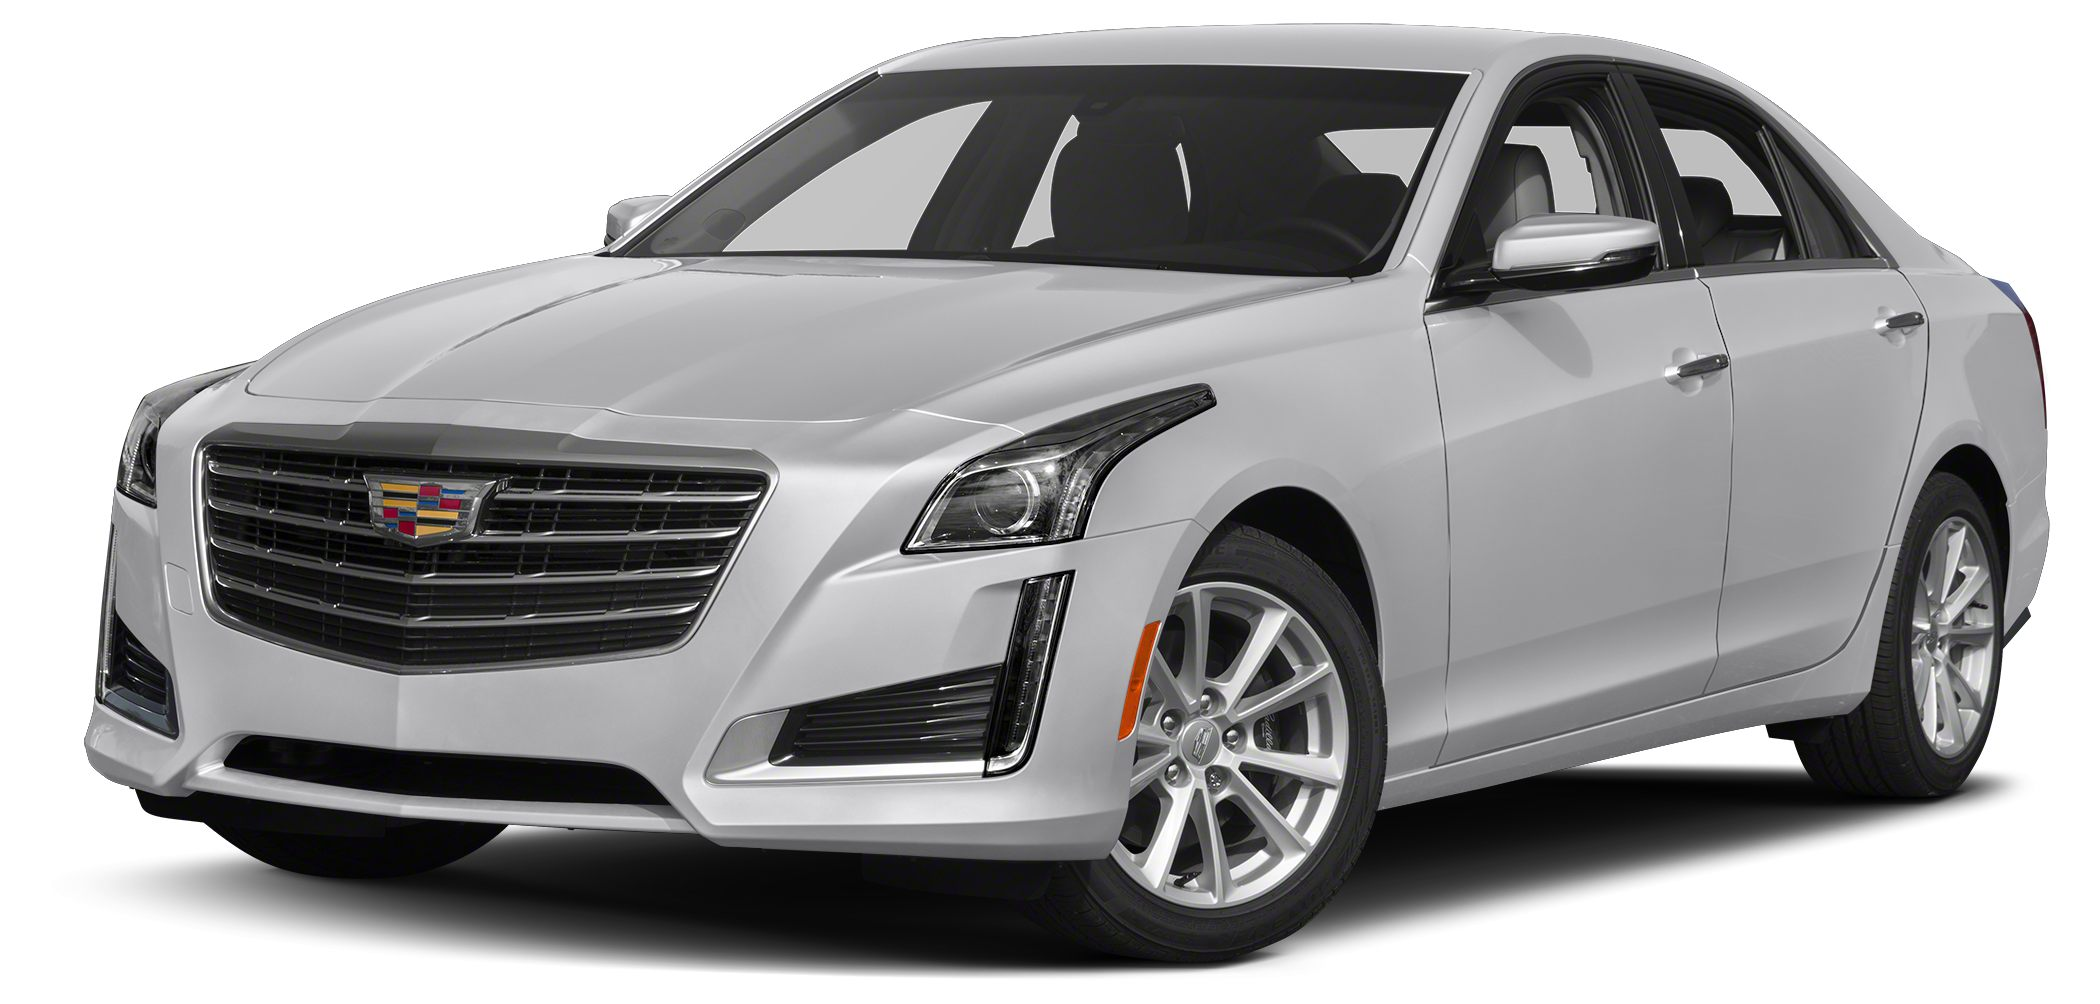 2017 Cadillac CTS Luxury Radiant Silver 2017 Cadillac CTS 36L Luxury AWD 8-Speed Automatic 36L V